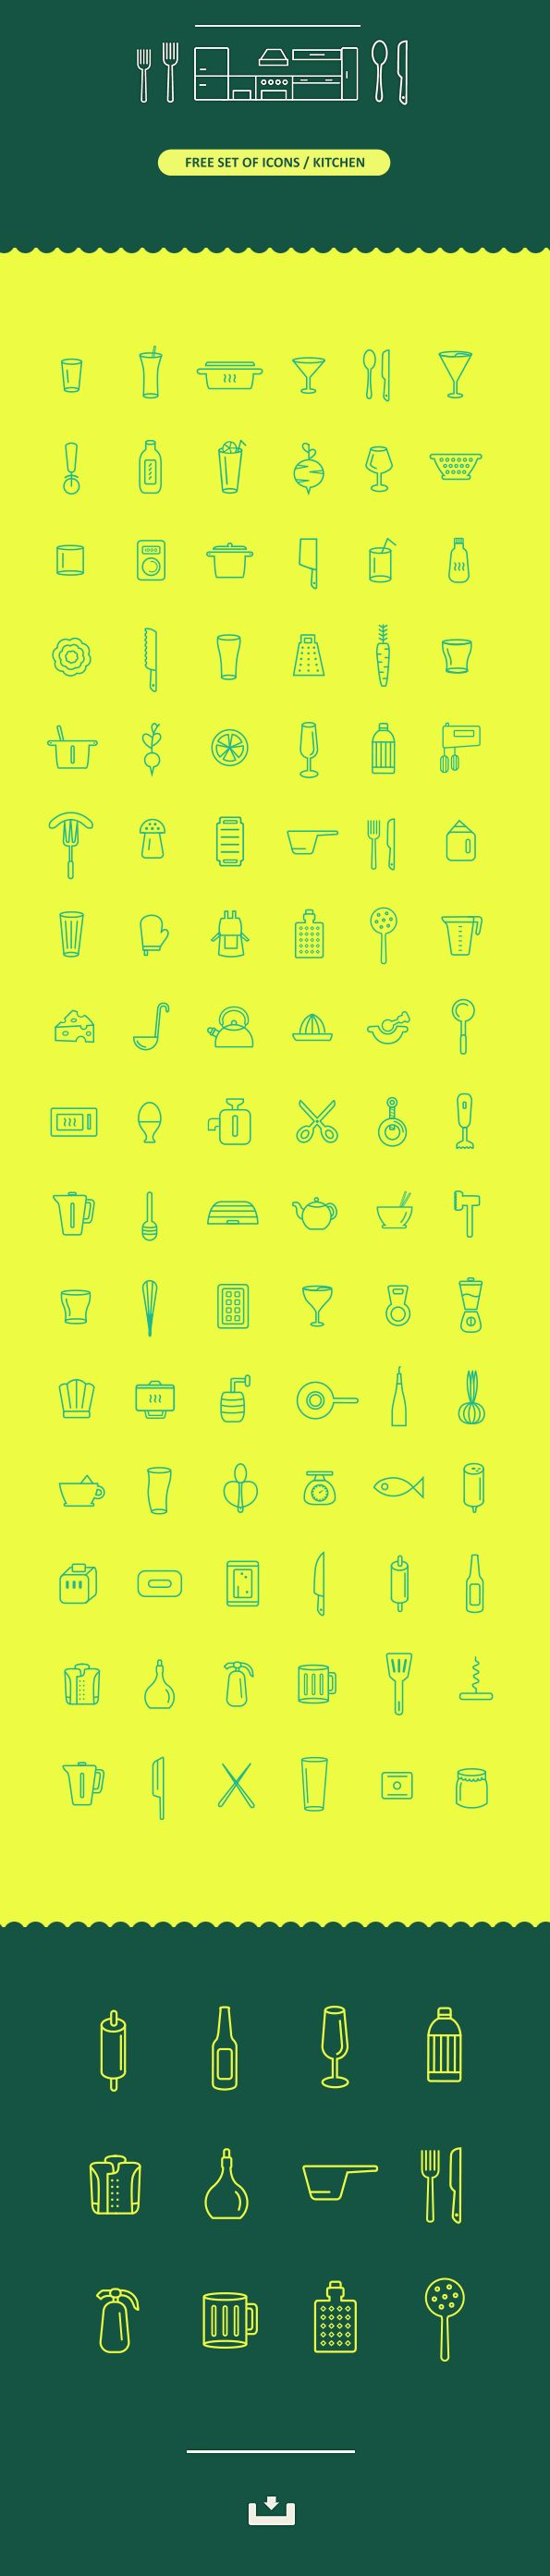 100 FREE ICONS / KITCHEN on Behance